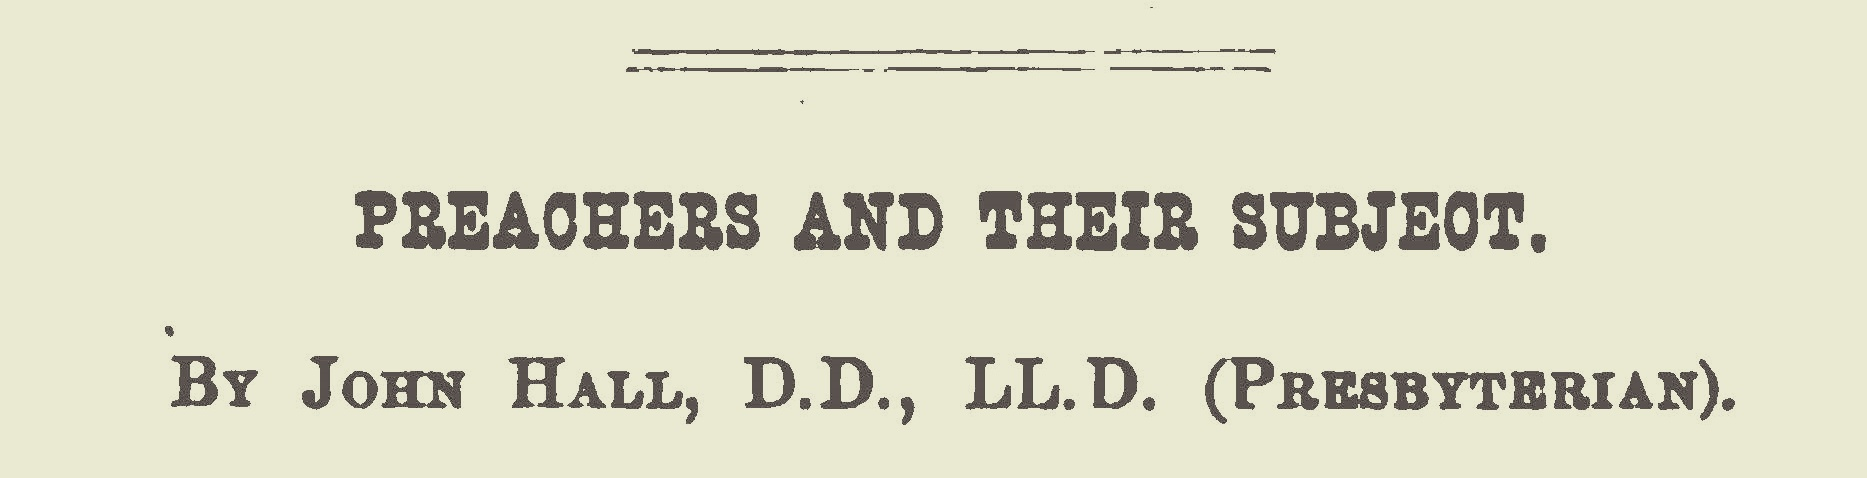 Hall, John, Preachers and Their Subject Title Page.jpg